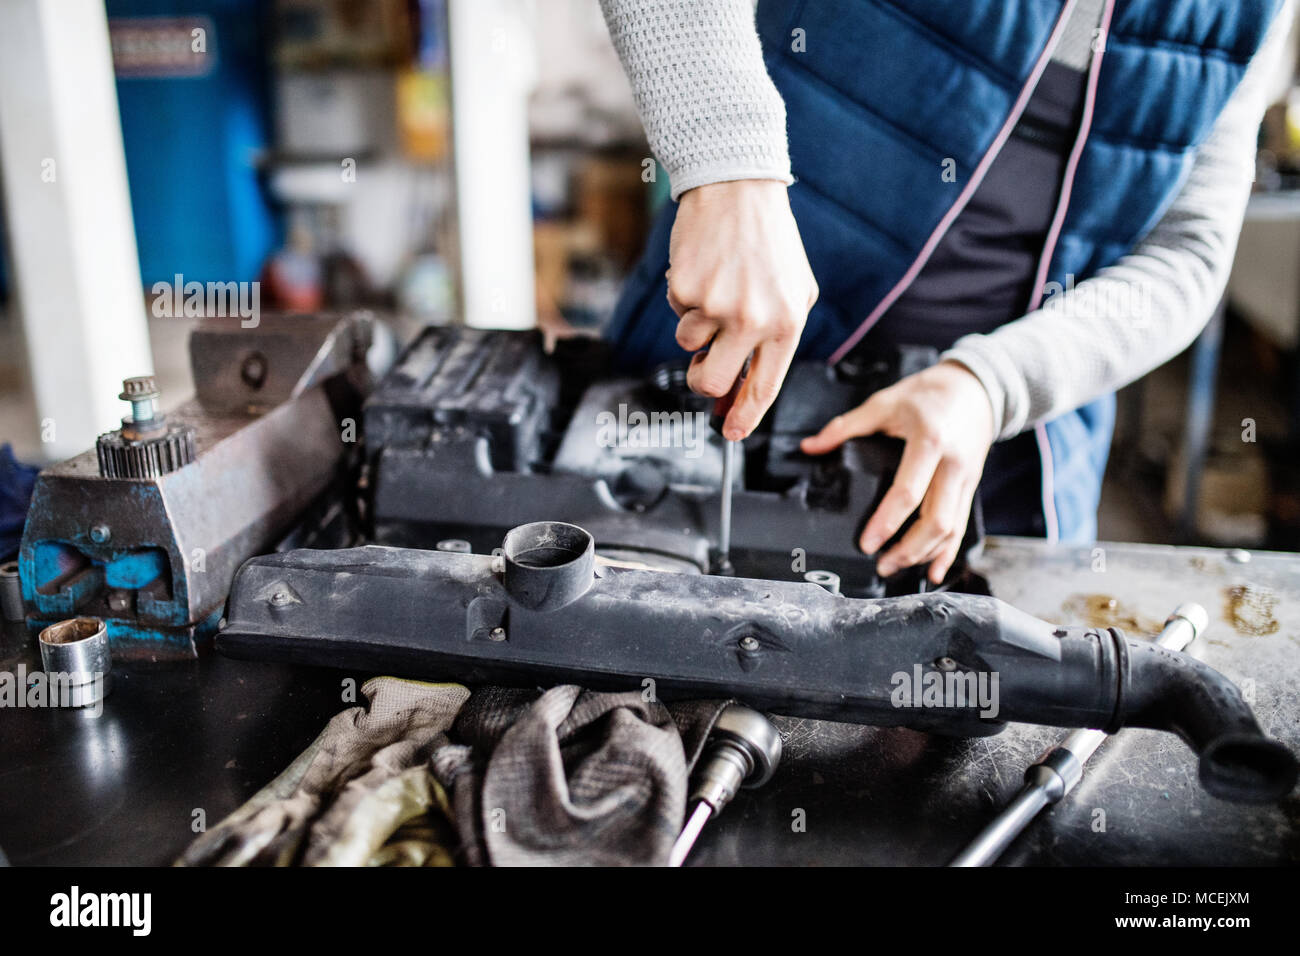 Man mechanic repairing a car in a garage. - Stock Image